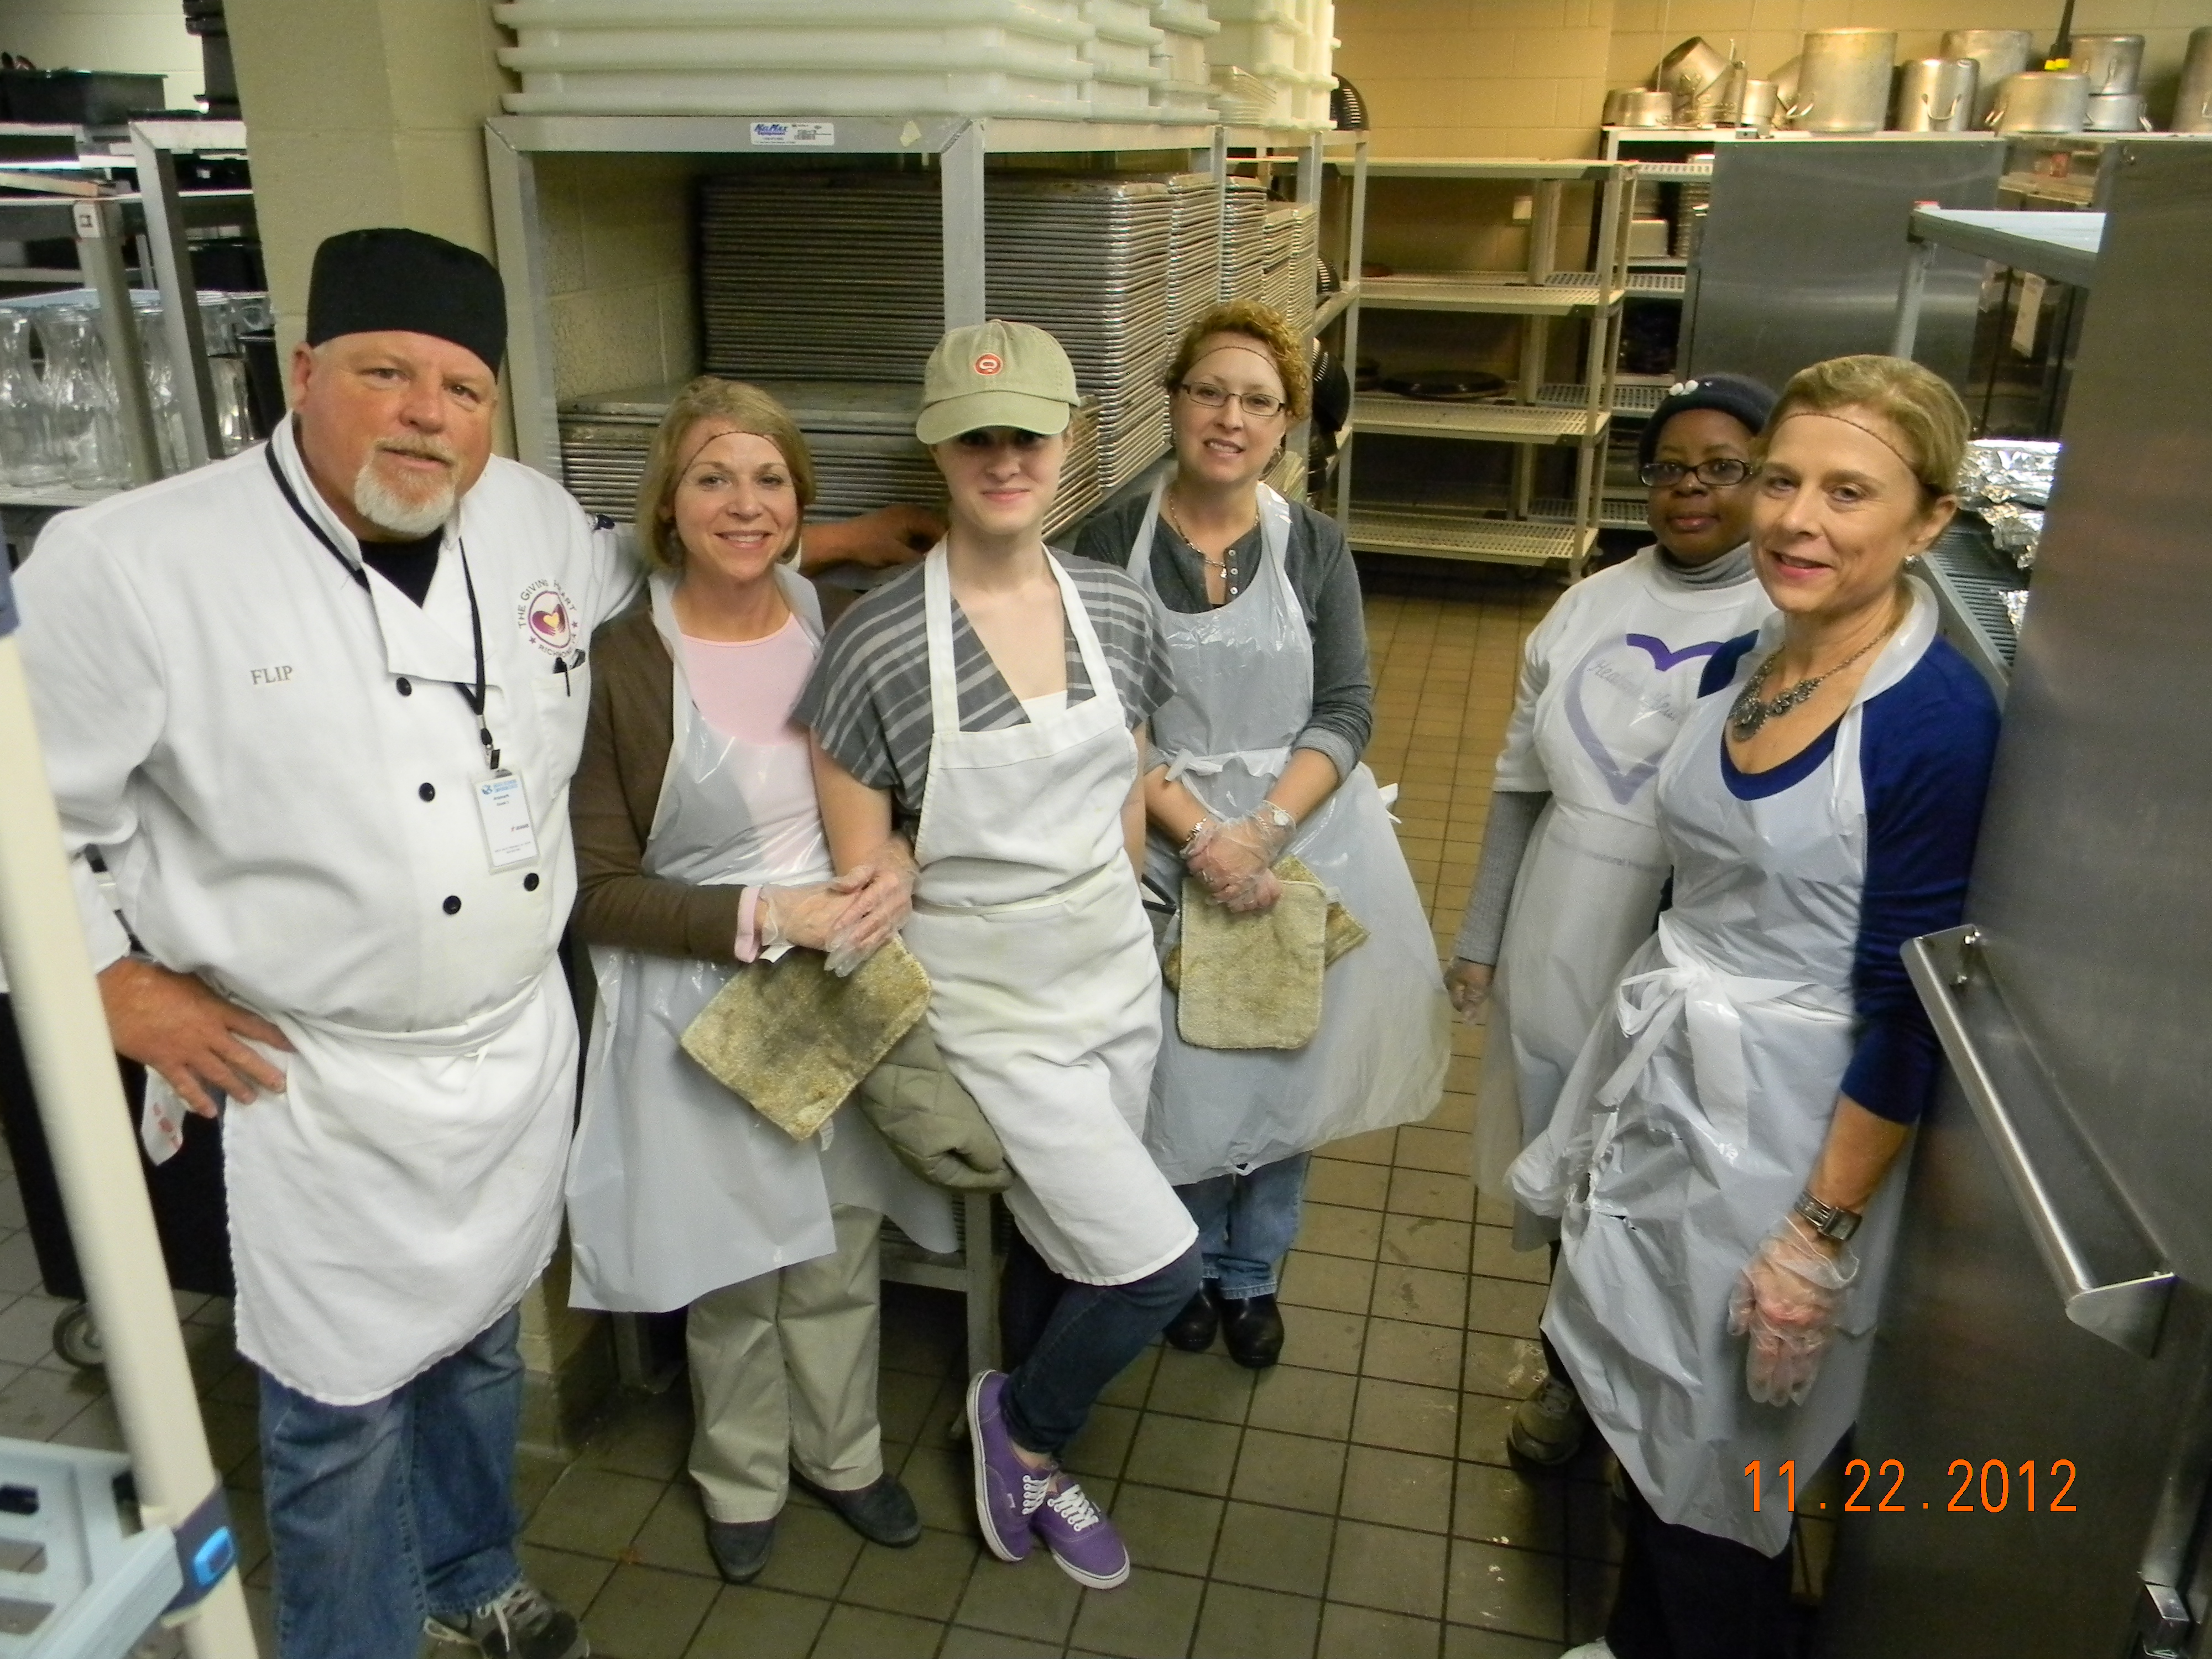 The Giving Heart Needs Your Help! Volunteer Chefs Wanted